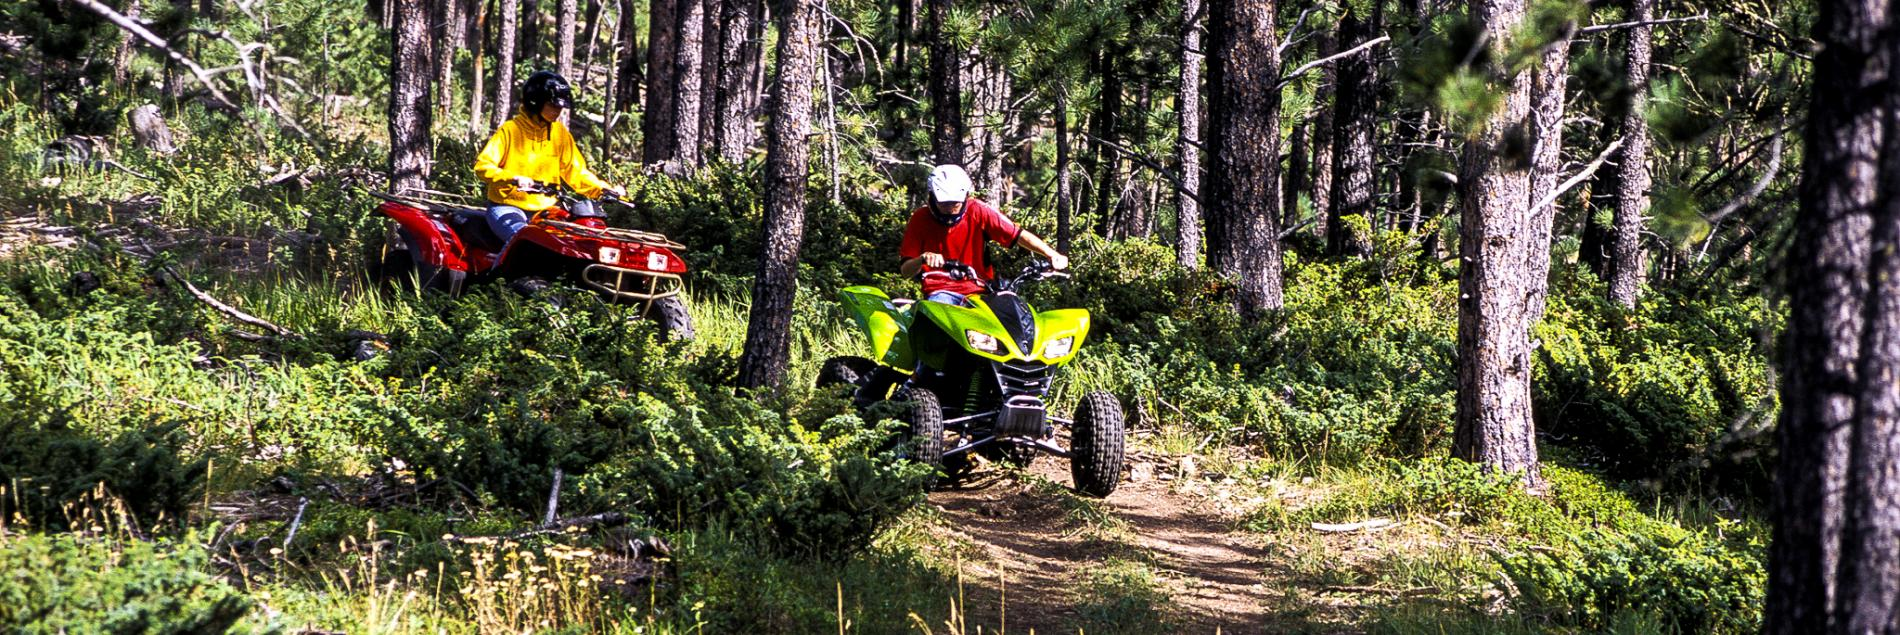 ATV & Off-Roading